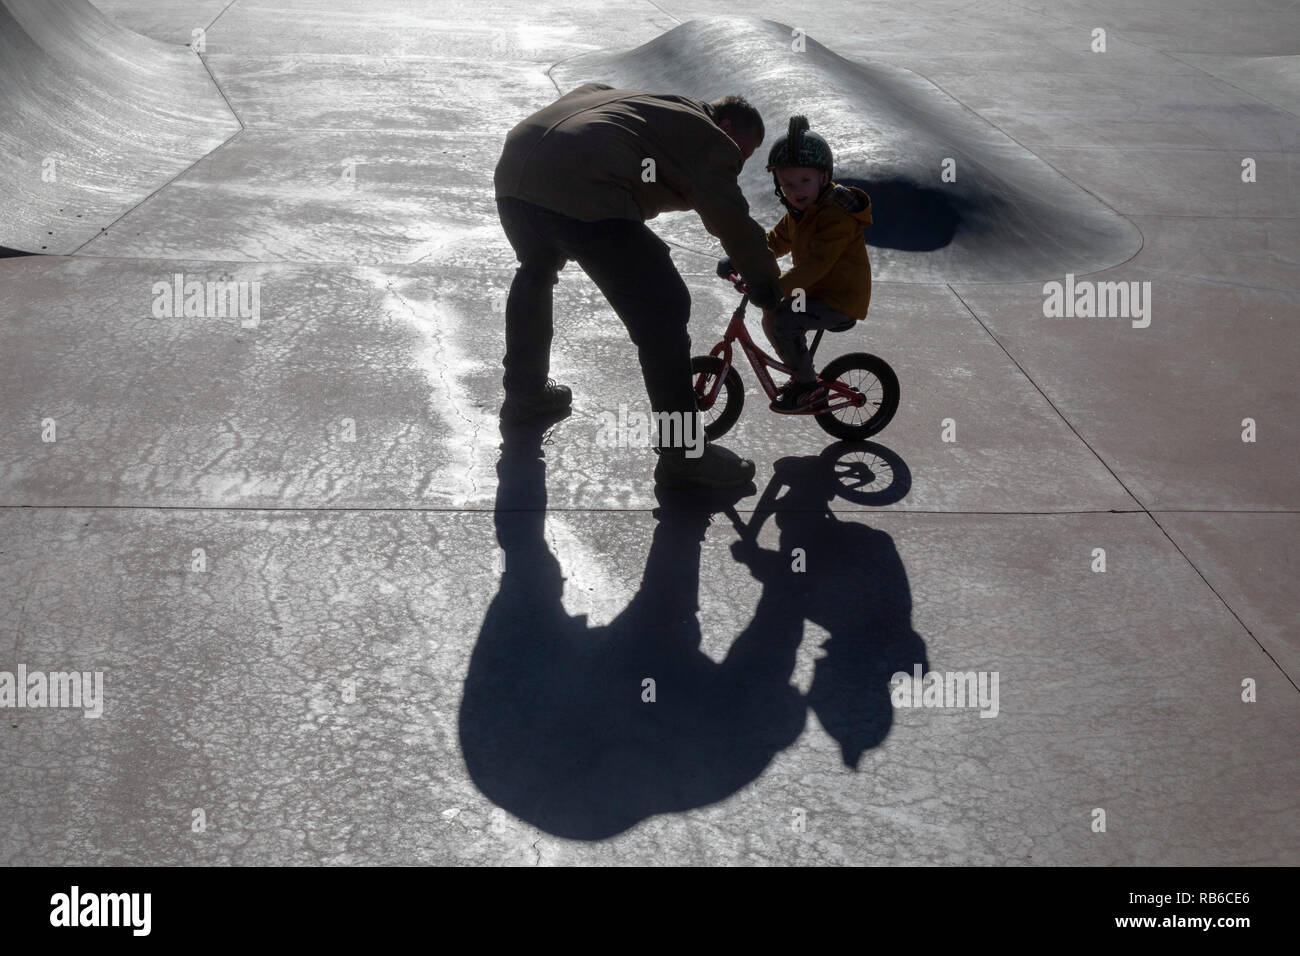 Denver, Colorado - Adam Hjermstad Sr. helps his four-year-old son, Adam Jr., to ride his balance bike in a skatepark. - Stock Image